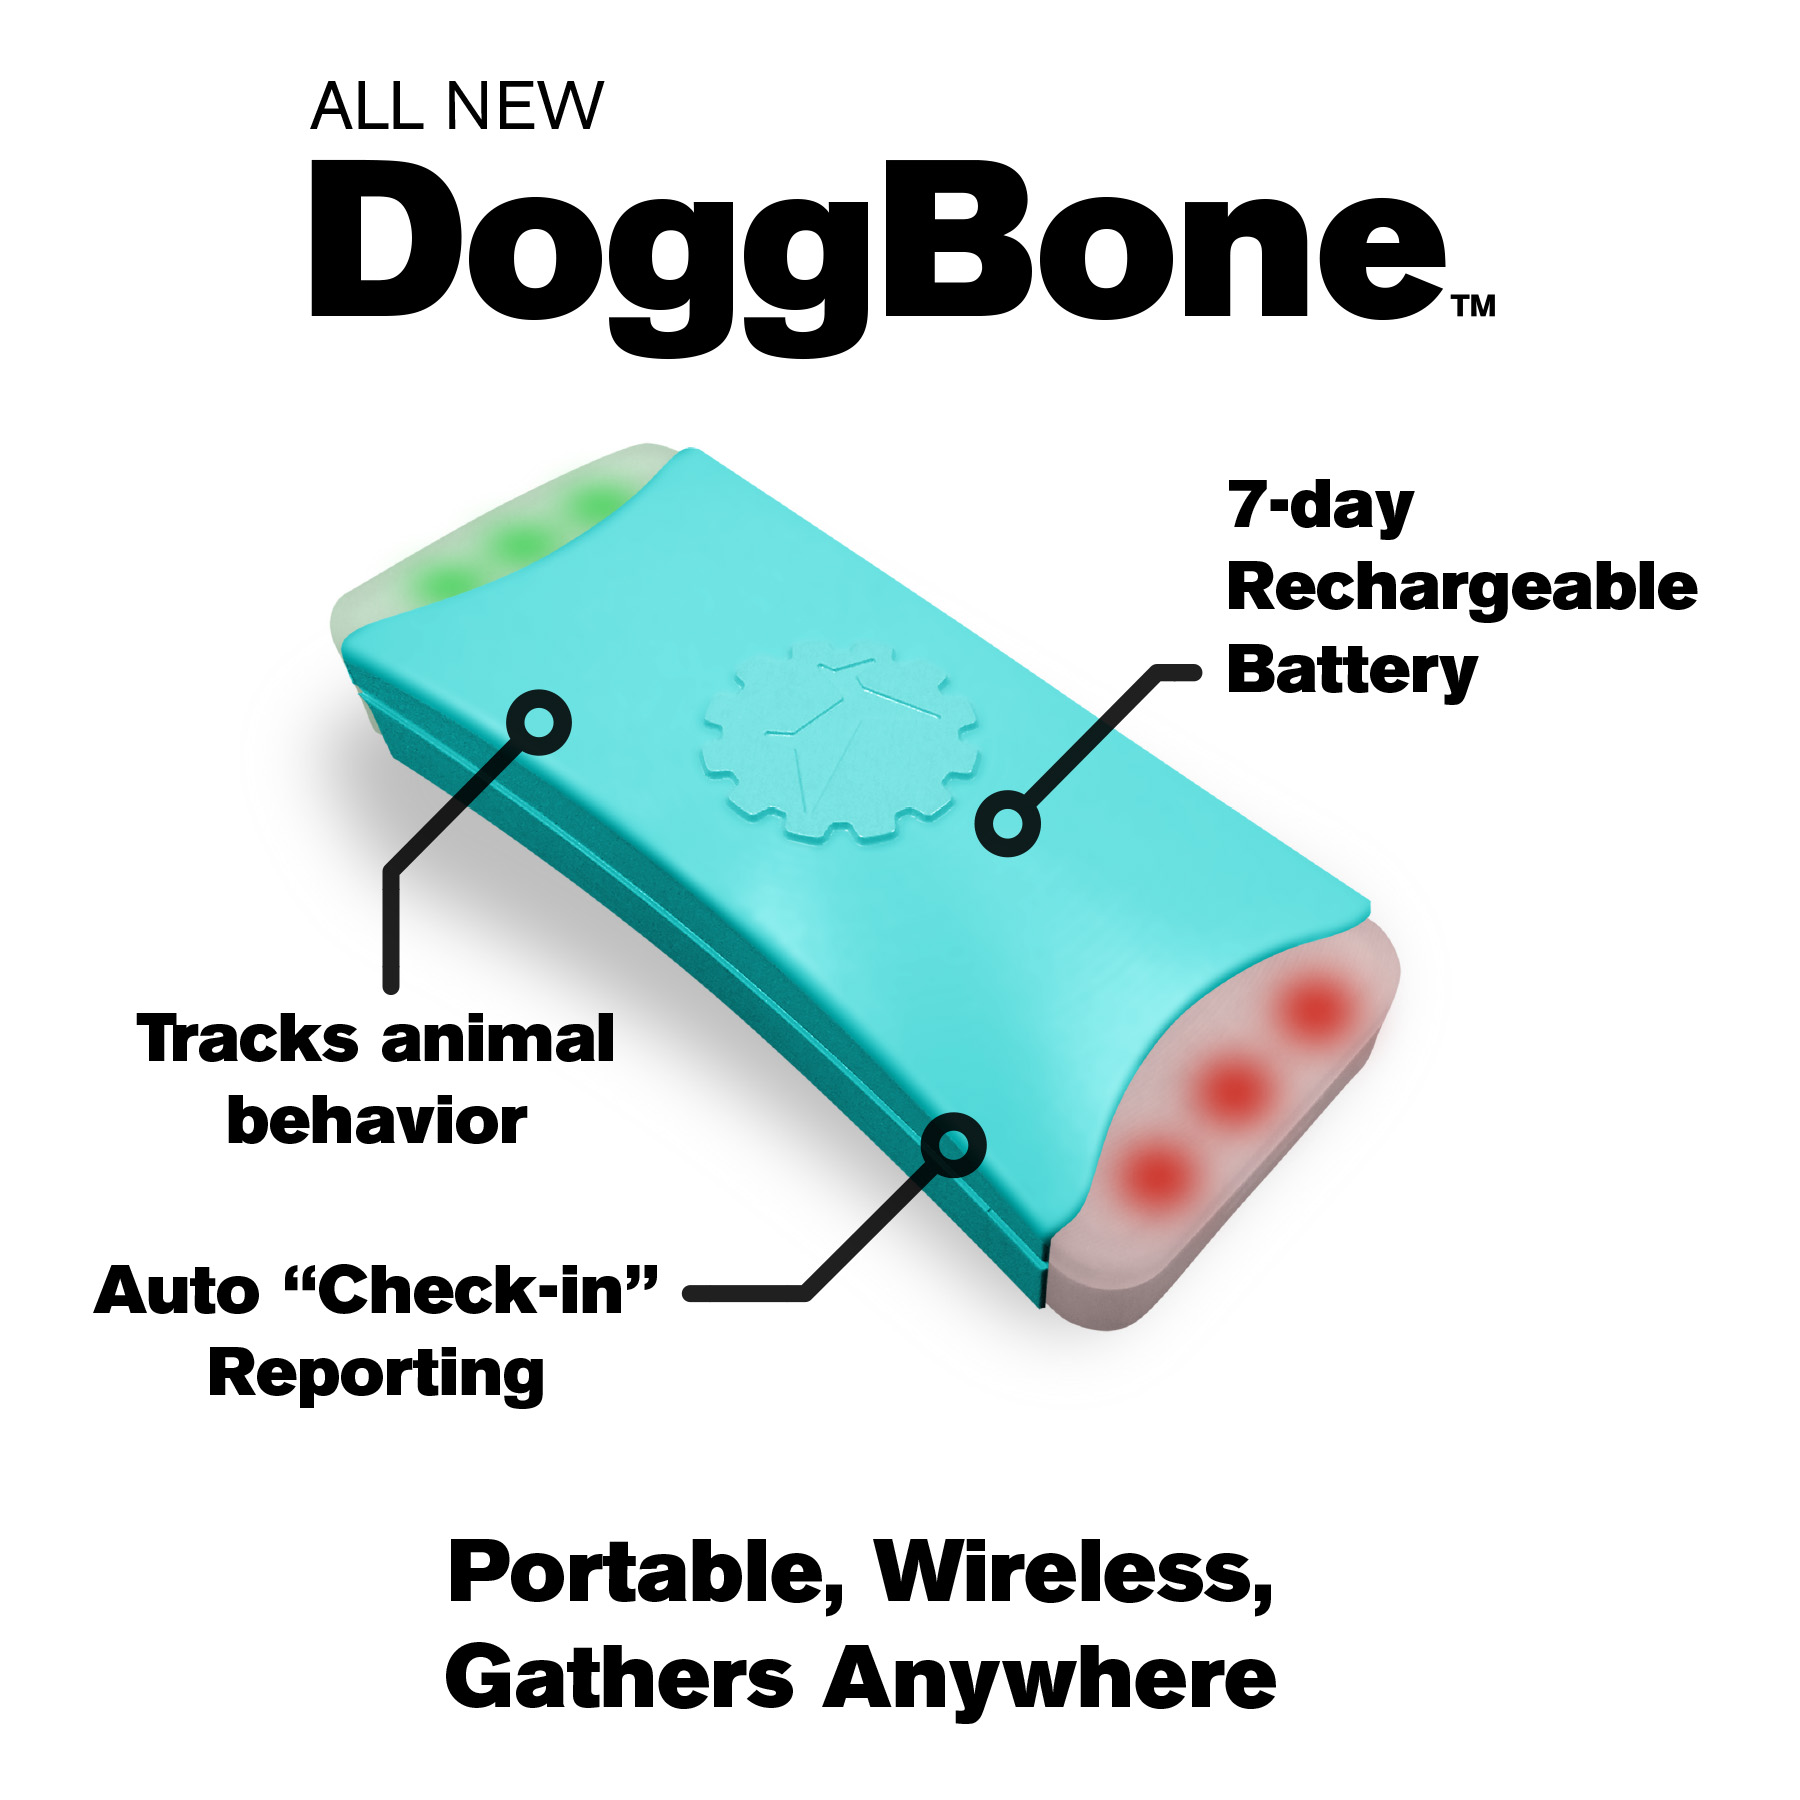 doggbone_tech (2).jpg